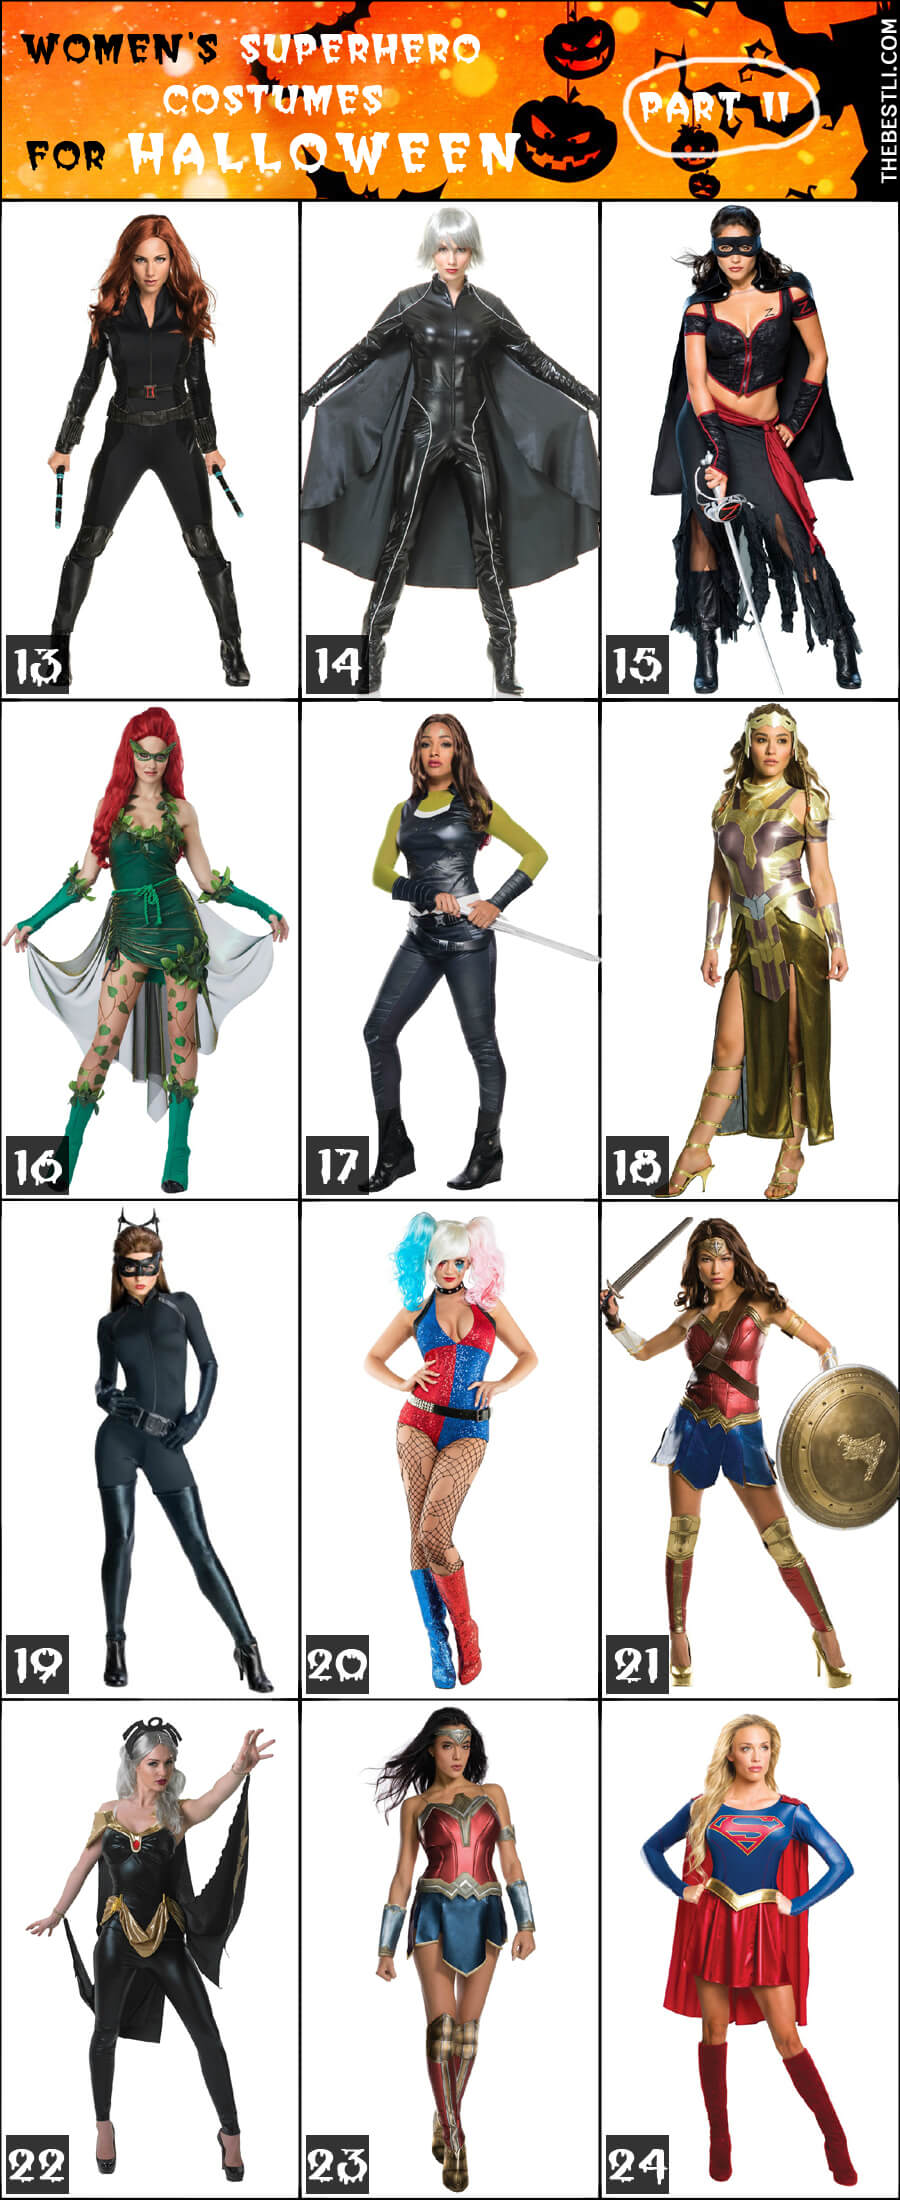 Women's Superhero & Villain Costumes for Halloween - part 2